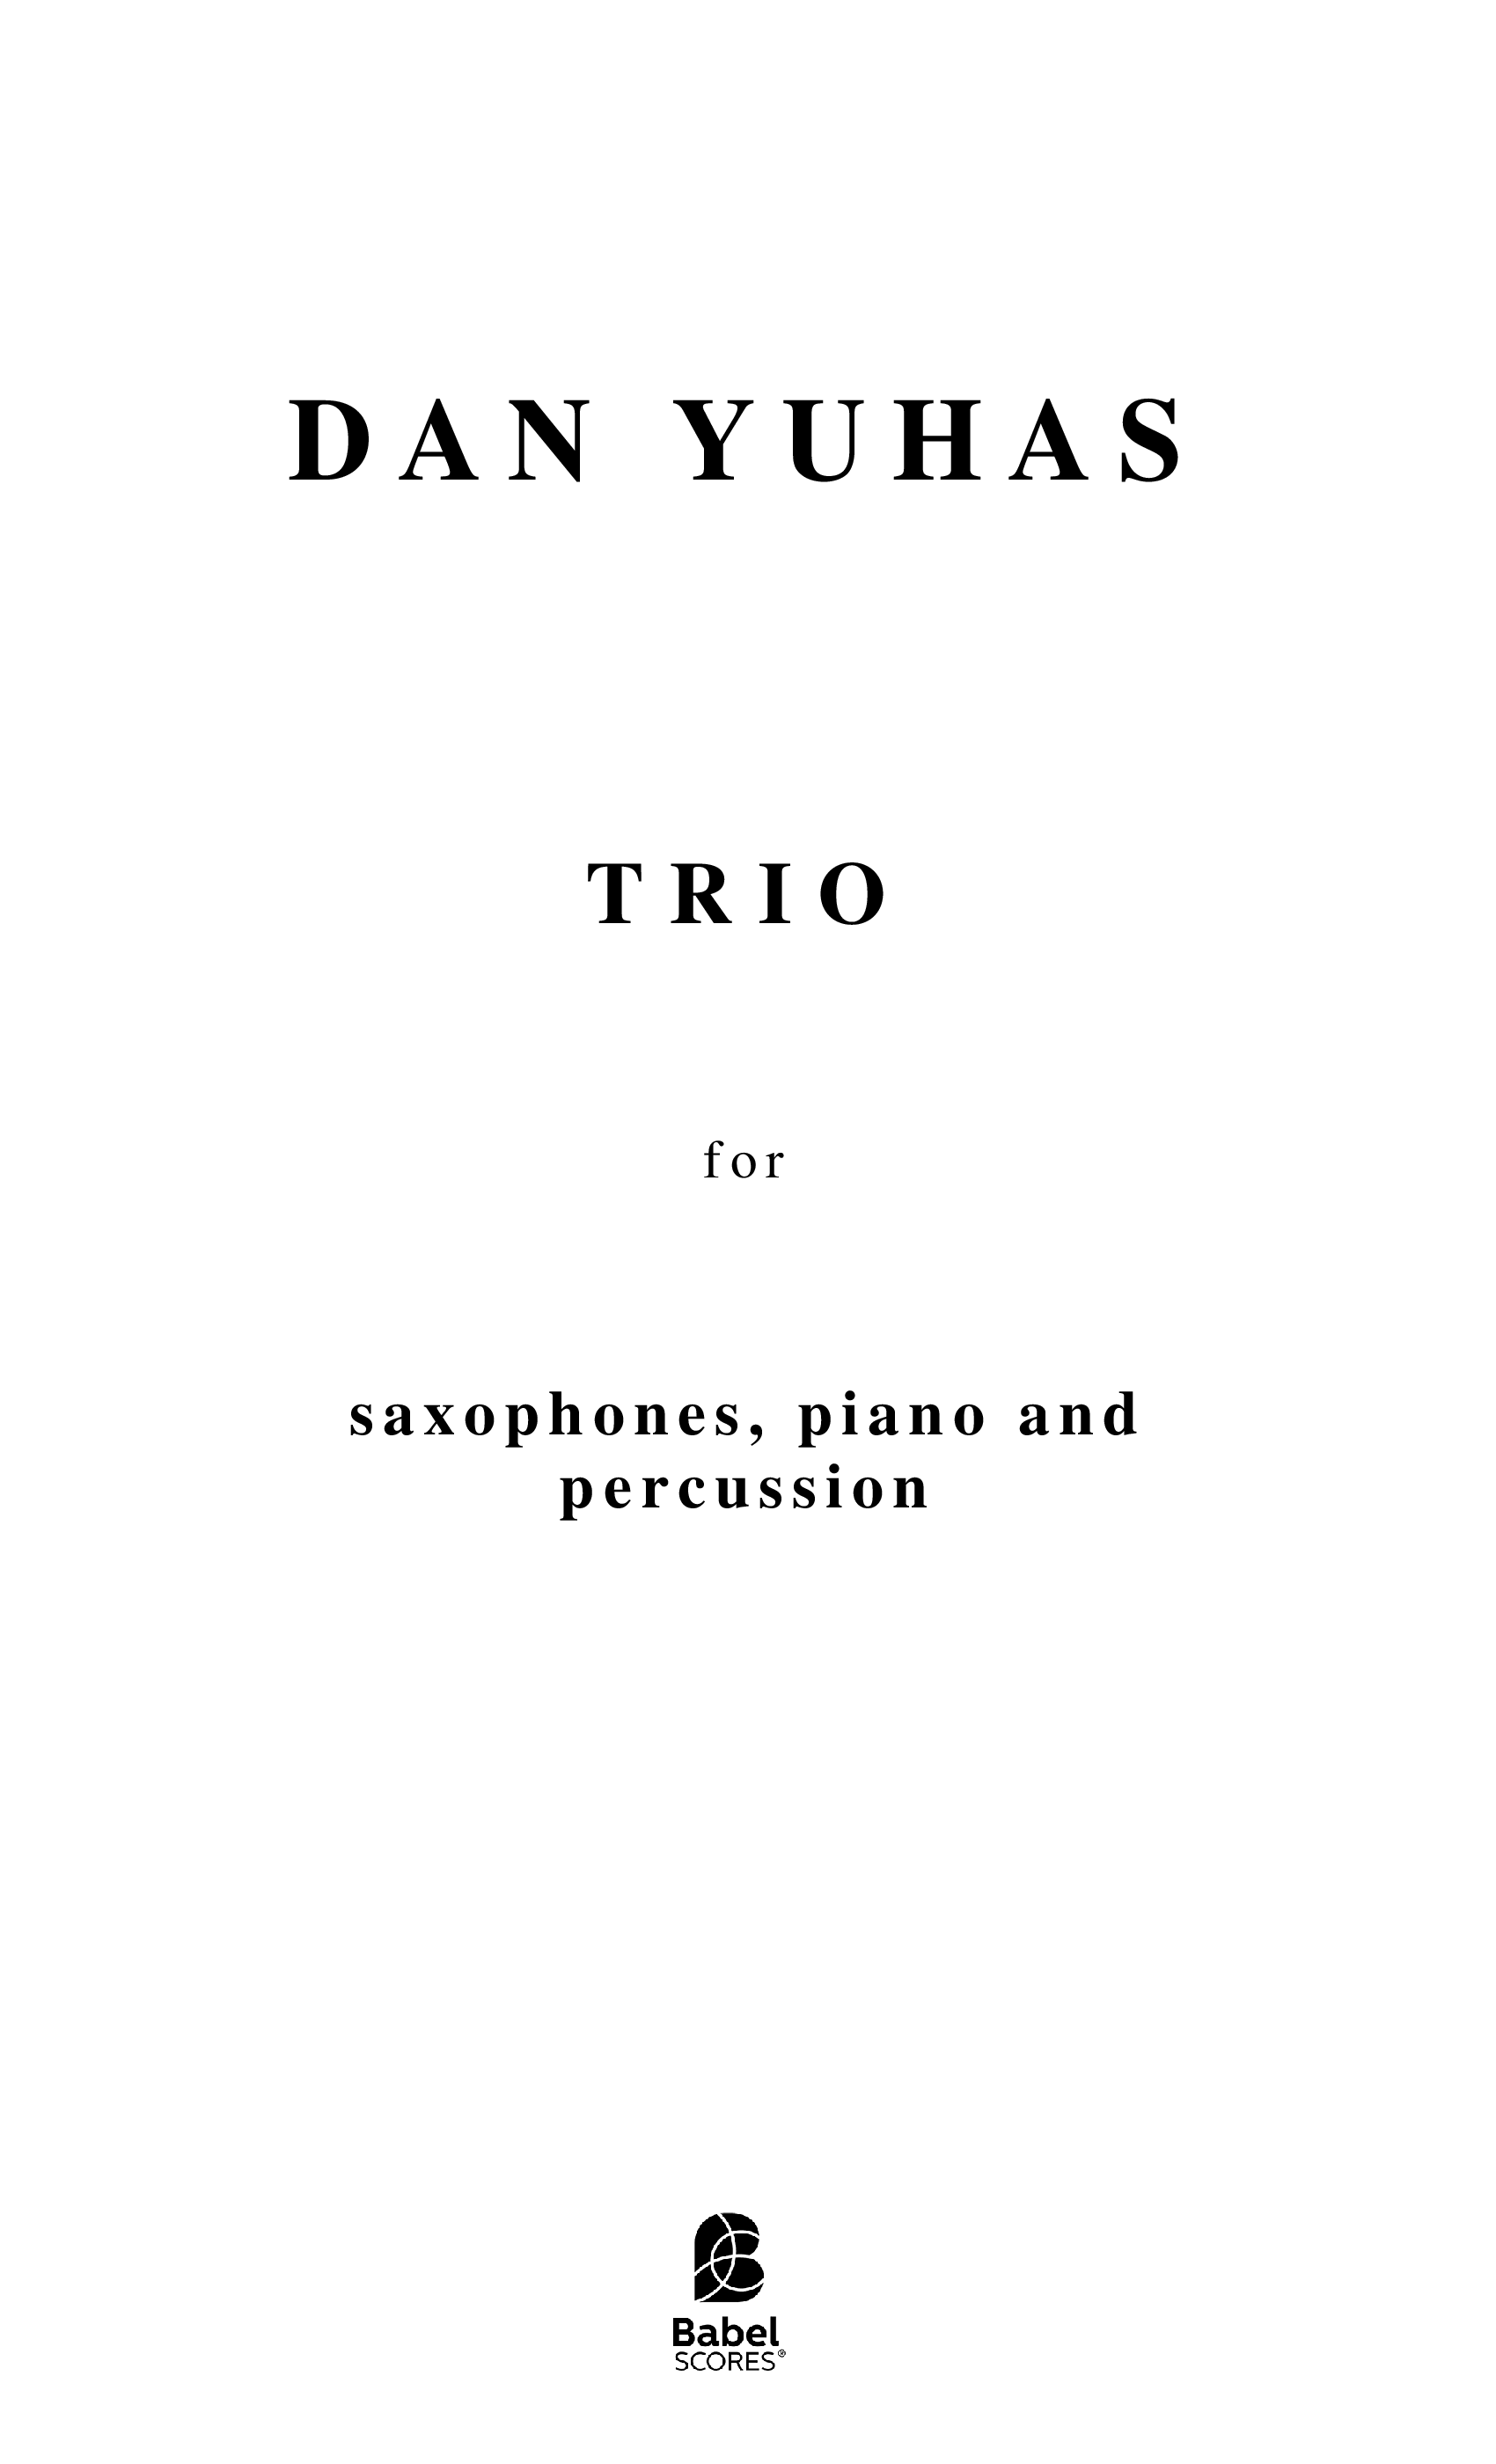 Trio for saxophones piano and percussion A4 z